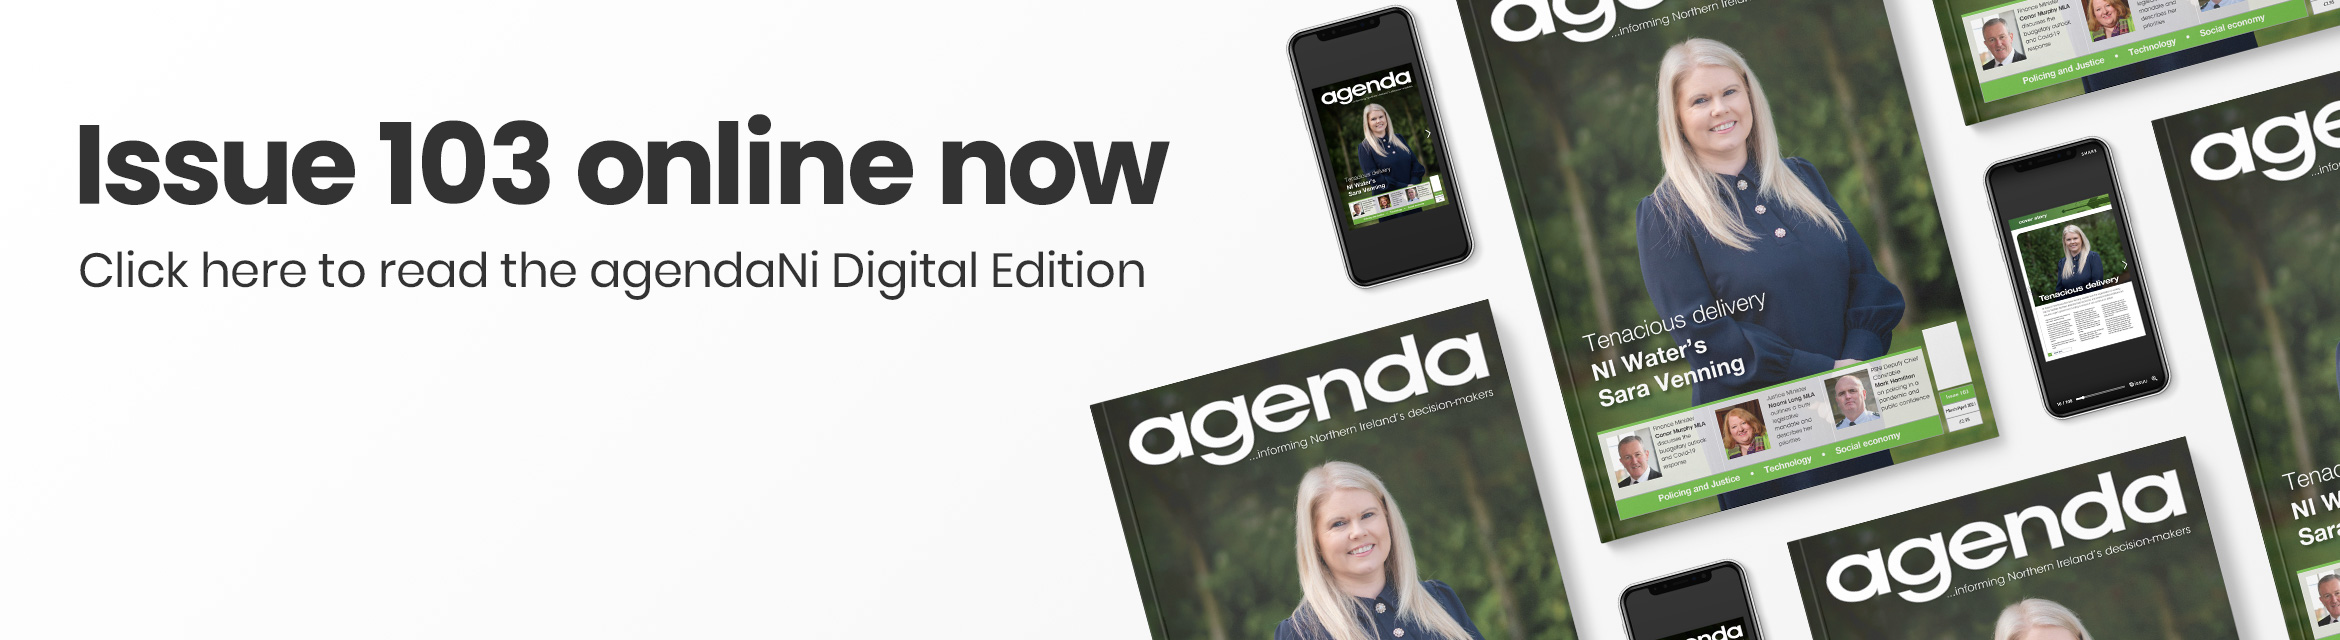 Issue 103 online now • Read the agendaNi Digital Edition